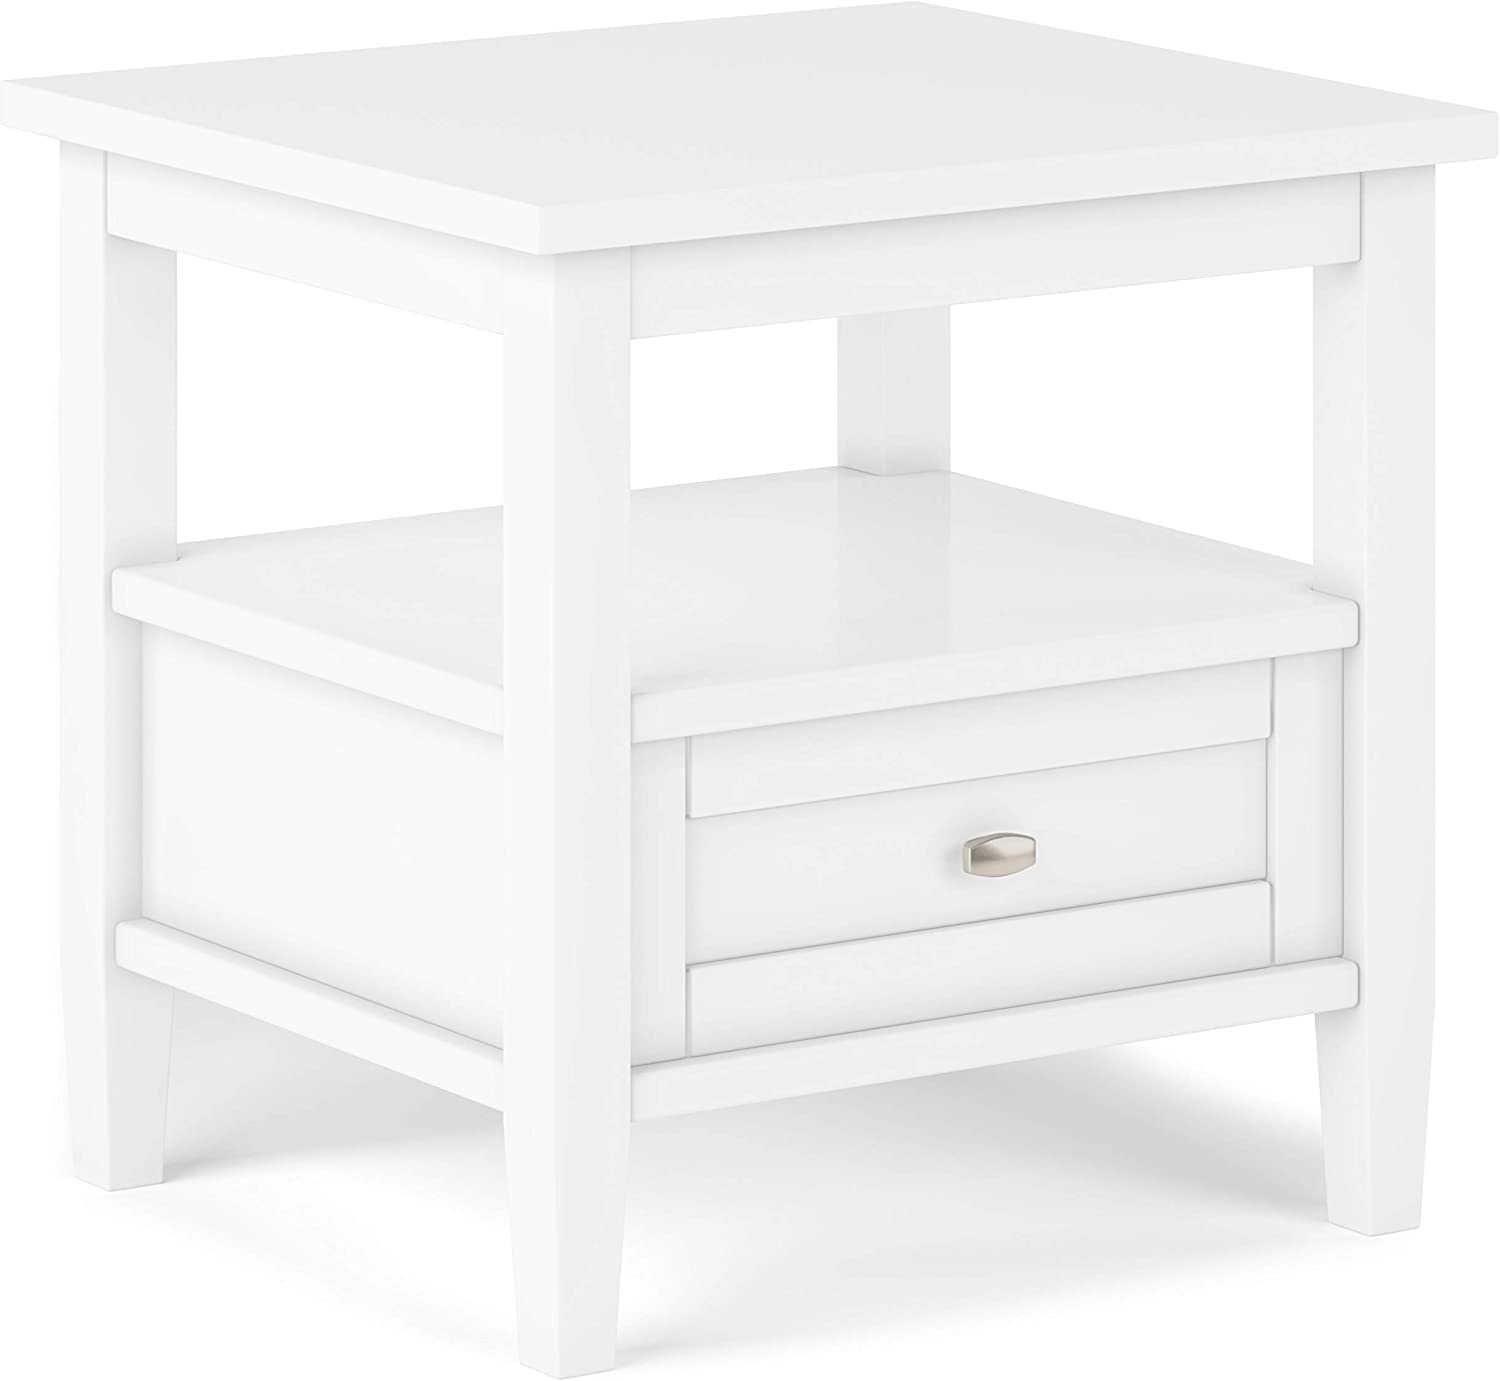 SIMPLIHOME Warm Shaker SOLID WOOD 20 inch wide Rectangle Rustic Contemporary End Side Table in White with Storage, 1 Drawer and 1 Shelf, for the Living Room and Bedroom